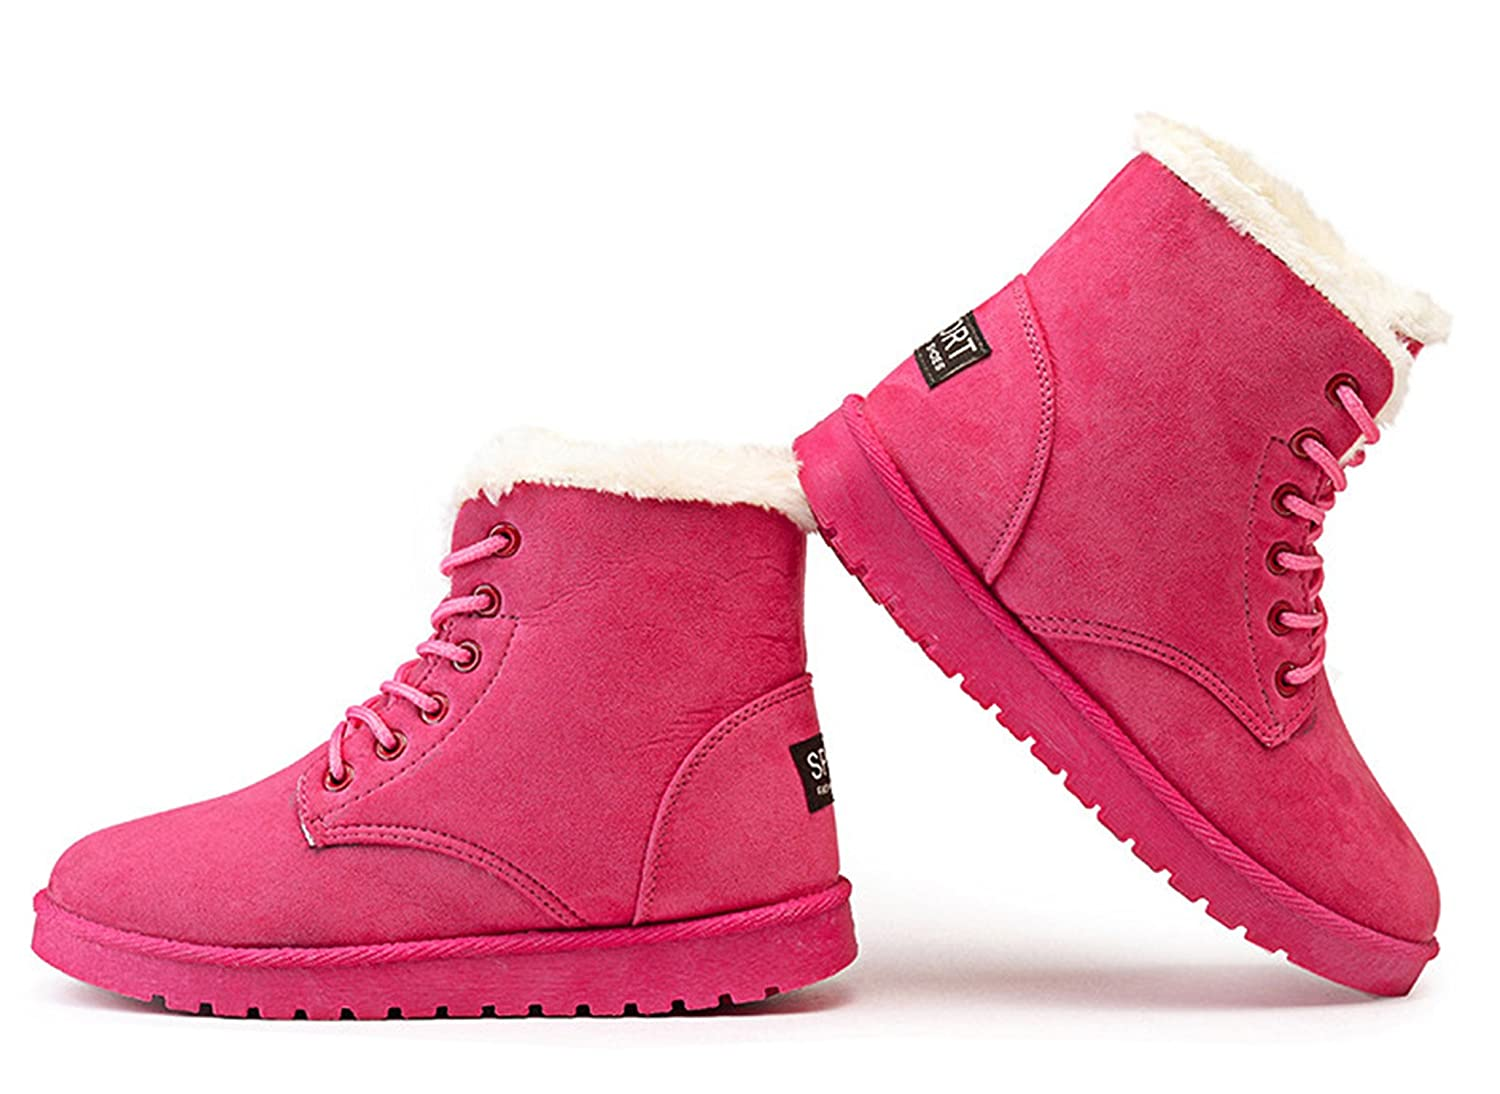 Kongsta Classic Women Winter Boots Suede Ankle Snow Boots Female Warm Fur Plush Insole Lace-Up